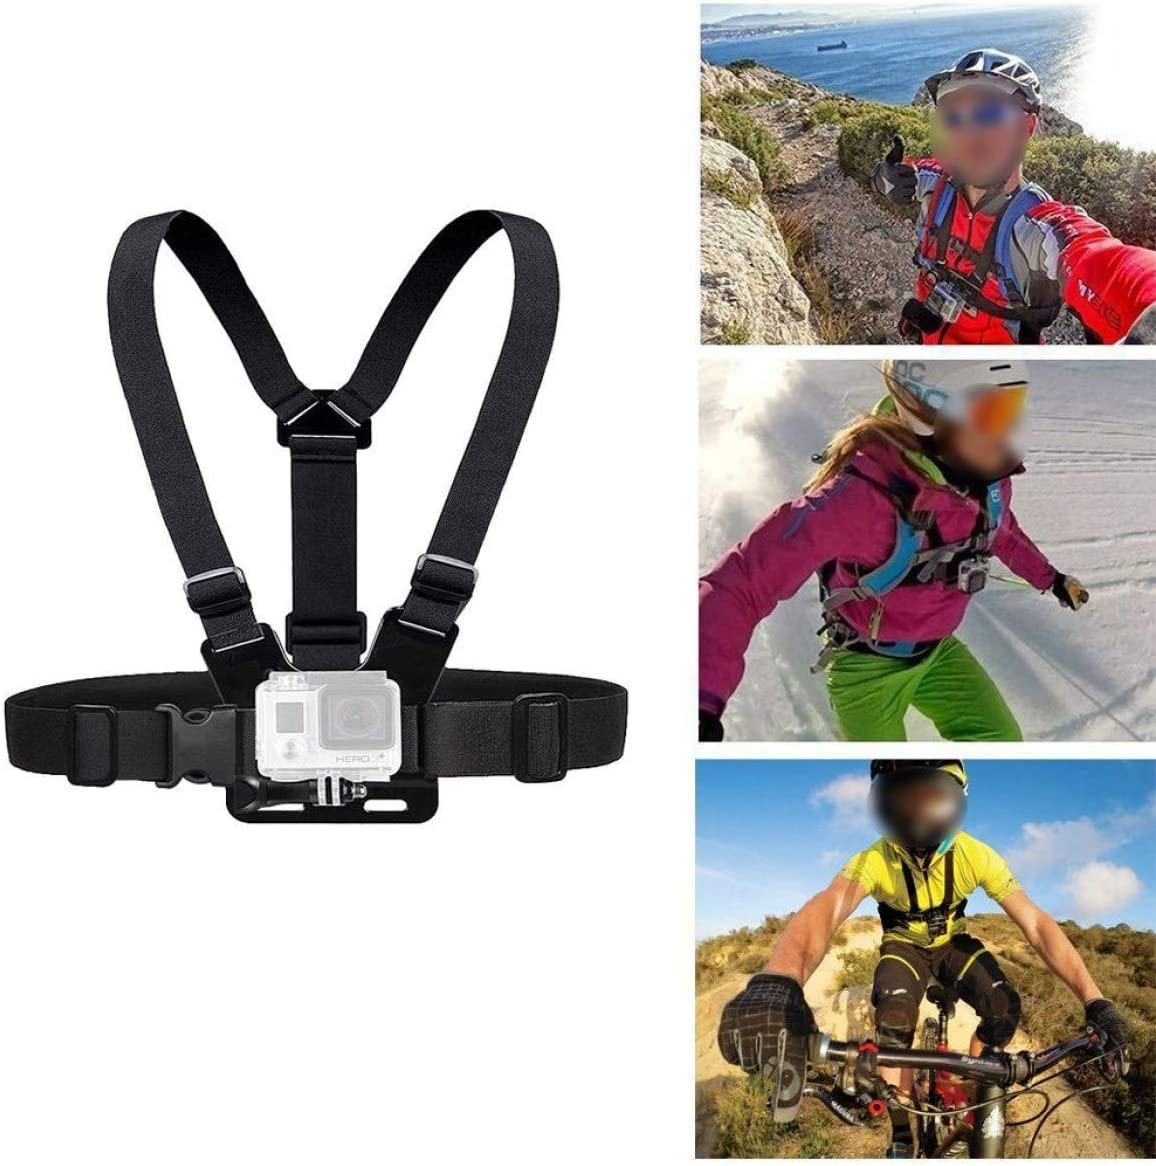 dfgjdryt Charming Adjustable Chest Strap Harness Mount For GoPro HD Hero for Home Decoration None black